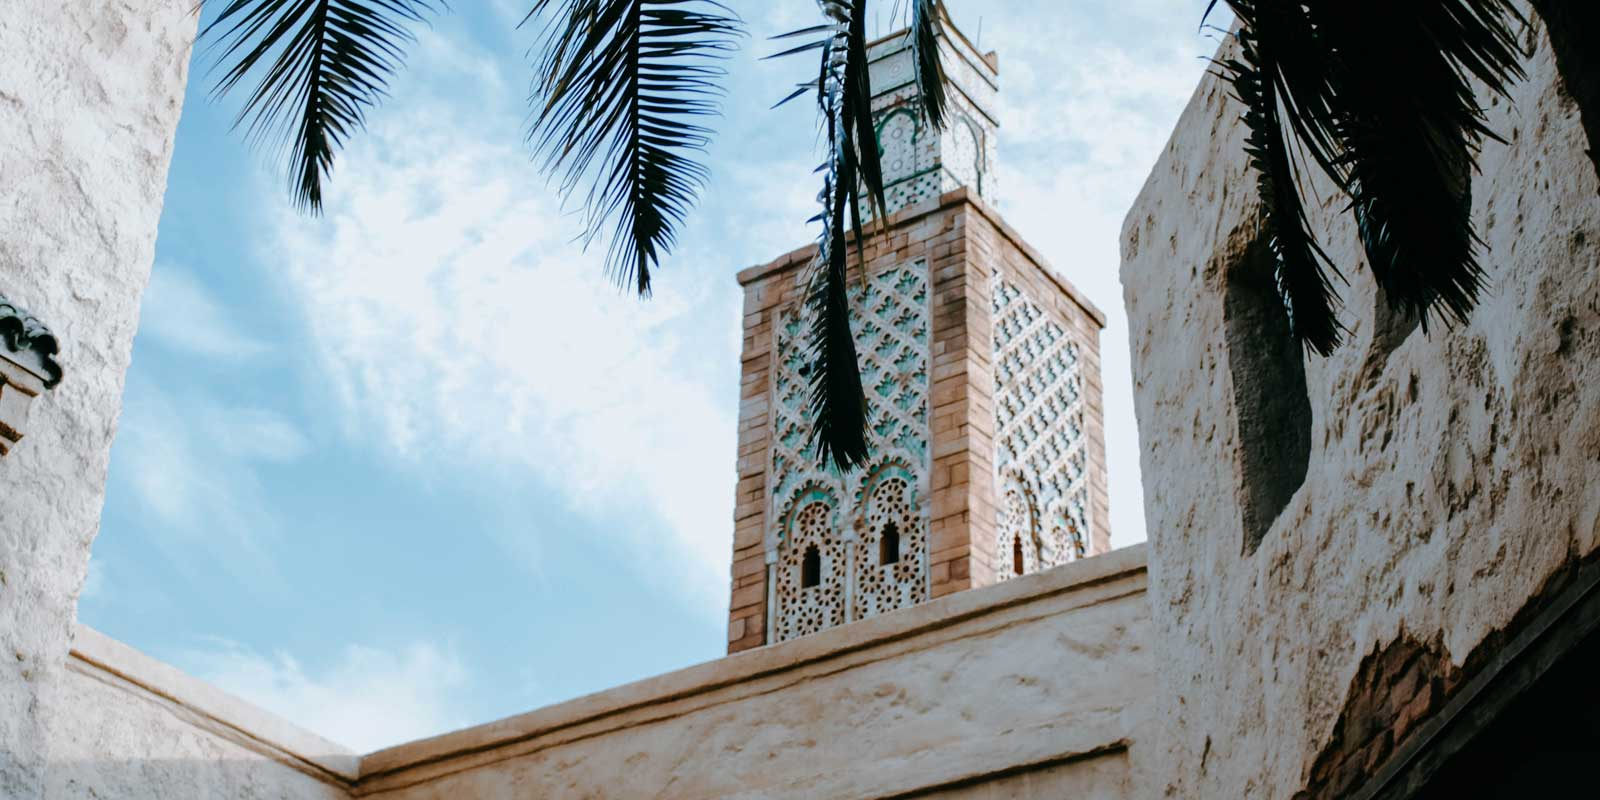 Closeup of a Moroccan building at Epcot's Morocco pavilion in Epcot's World Showcase.